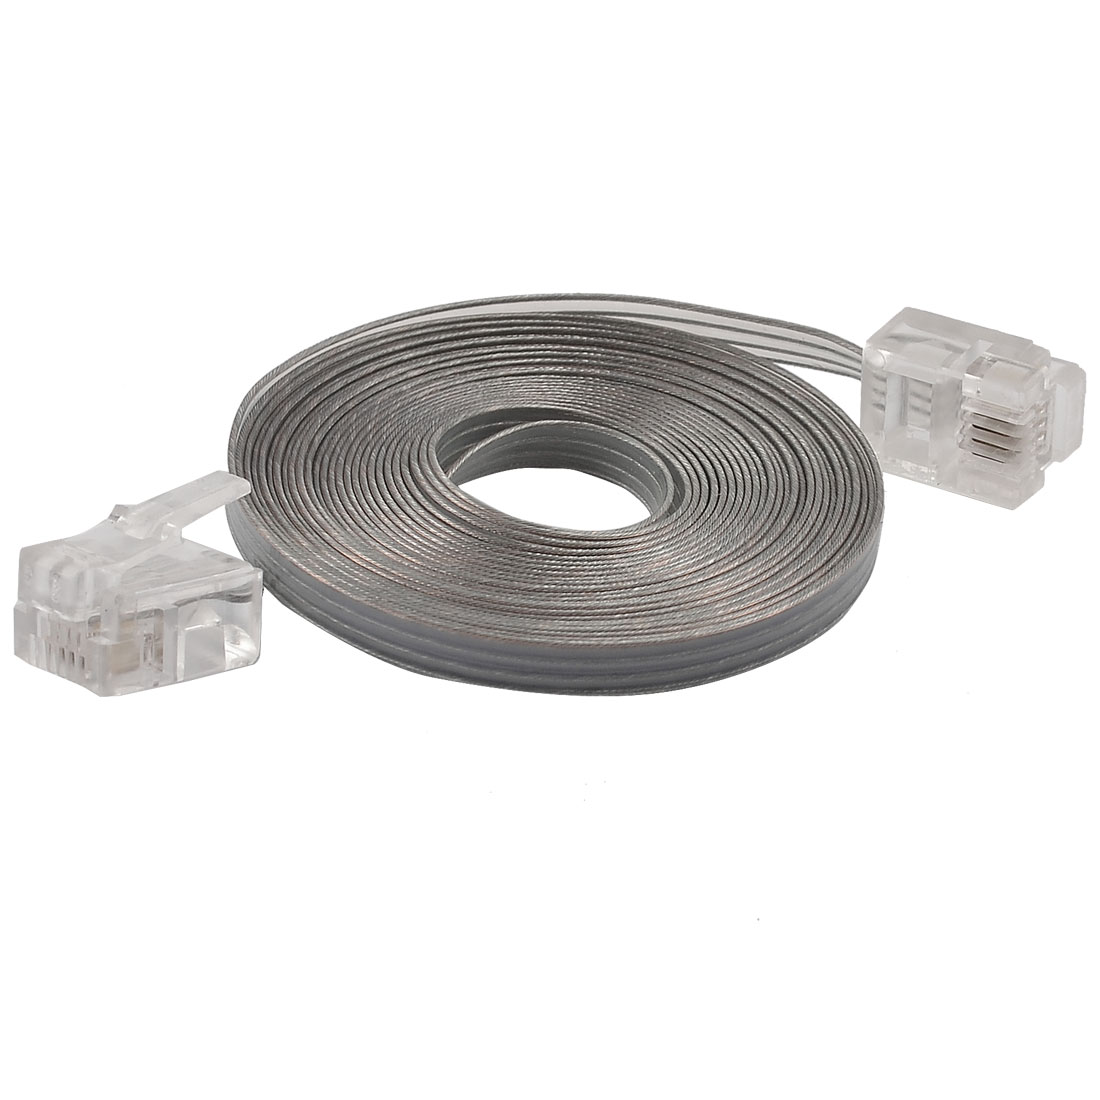 2.4M Long Clear Plastic RJ11 4P4C Telephone Handset Flat Cable